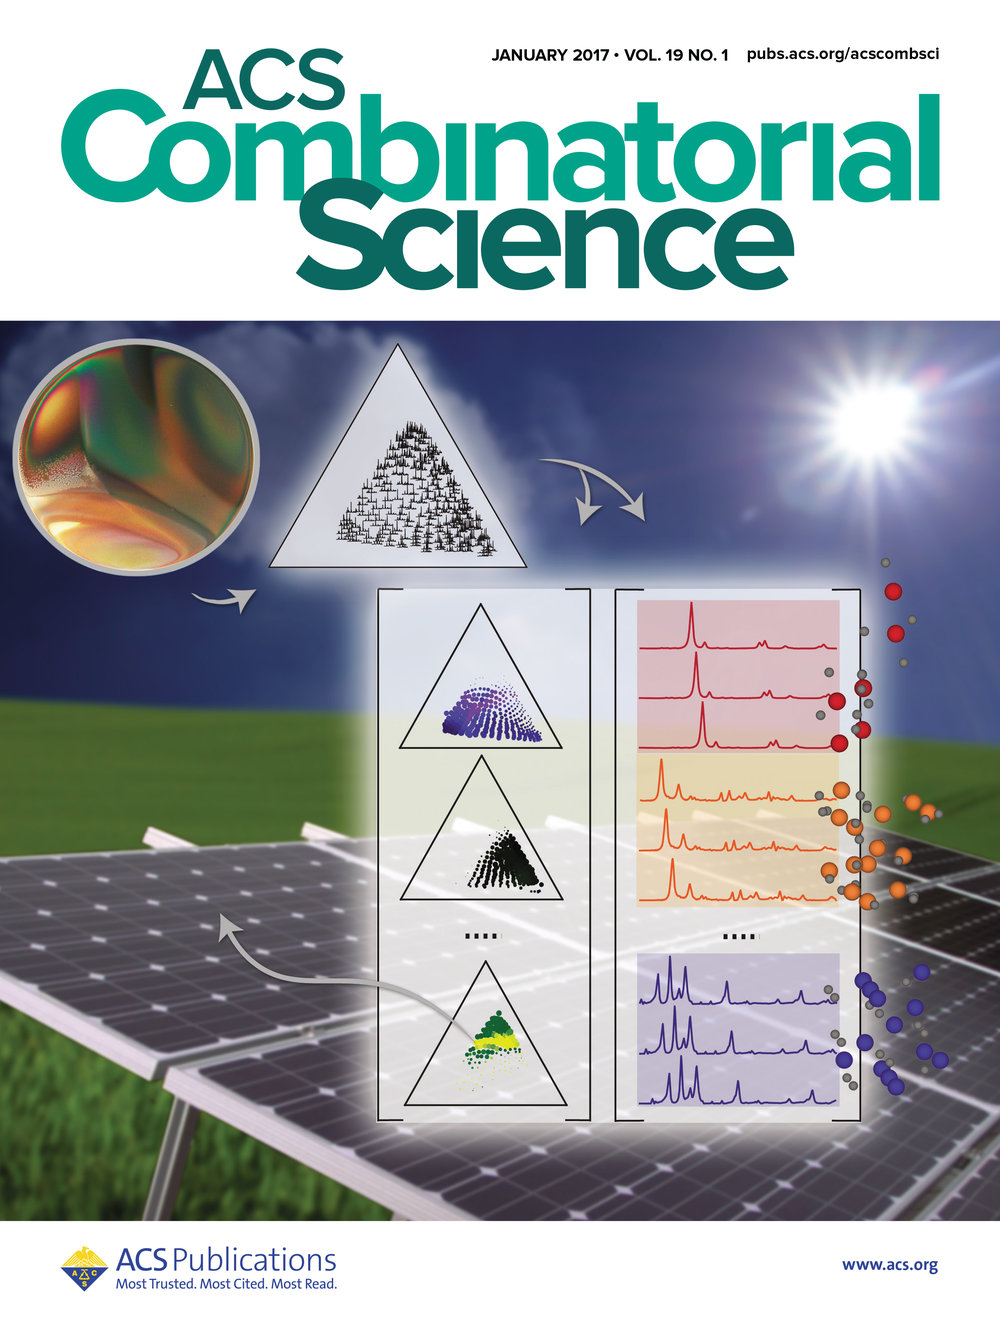 JCAP ACS Combinatorial Science Suram et al 2017 cover 19(1)